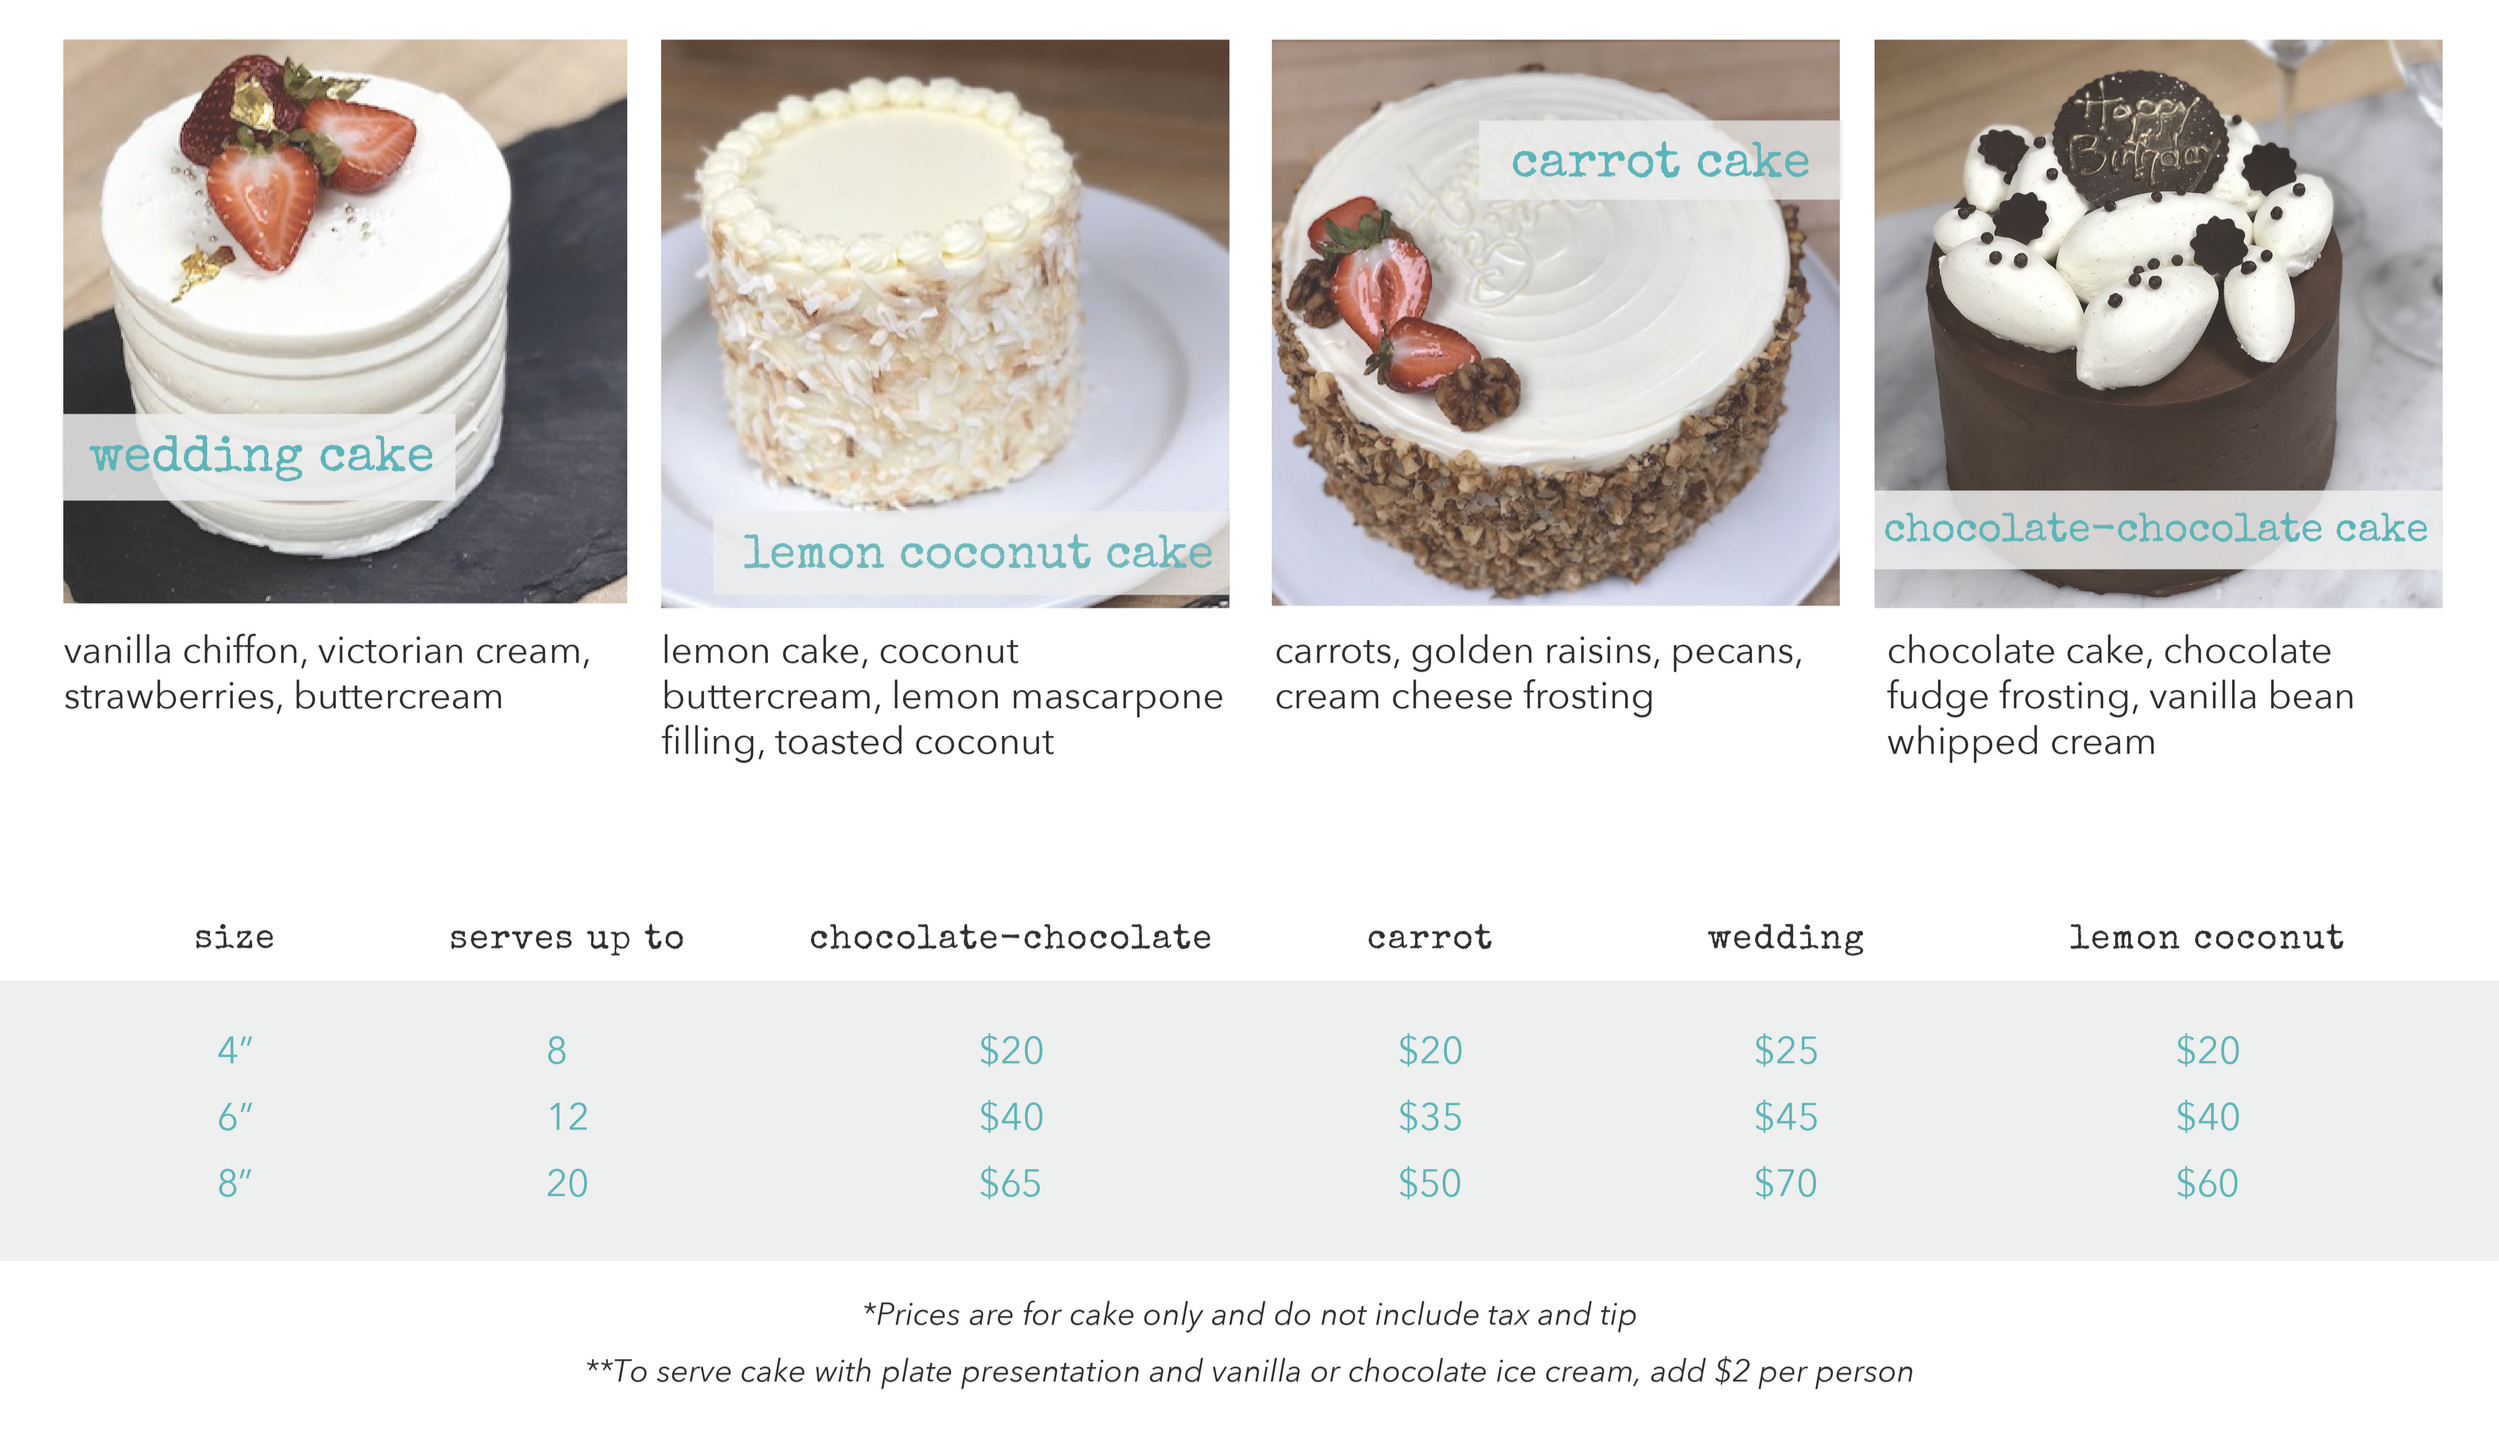 taos+custom+cakes+-+wedding+cakes%2C+birthday+cakes%2C+anniversary%2C+retirement